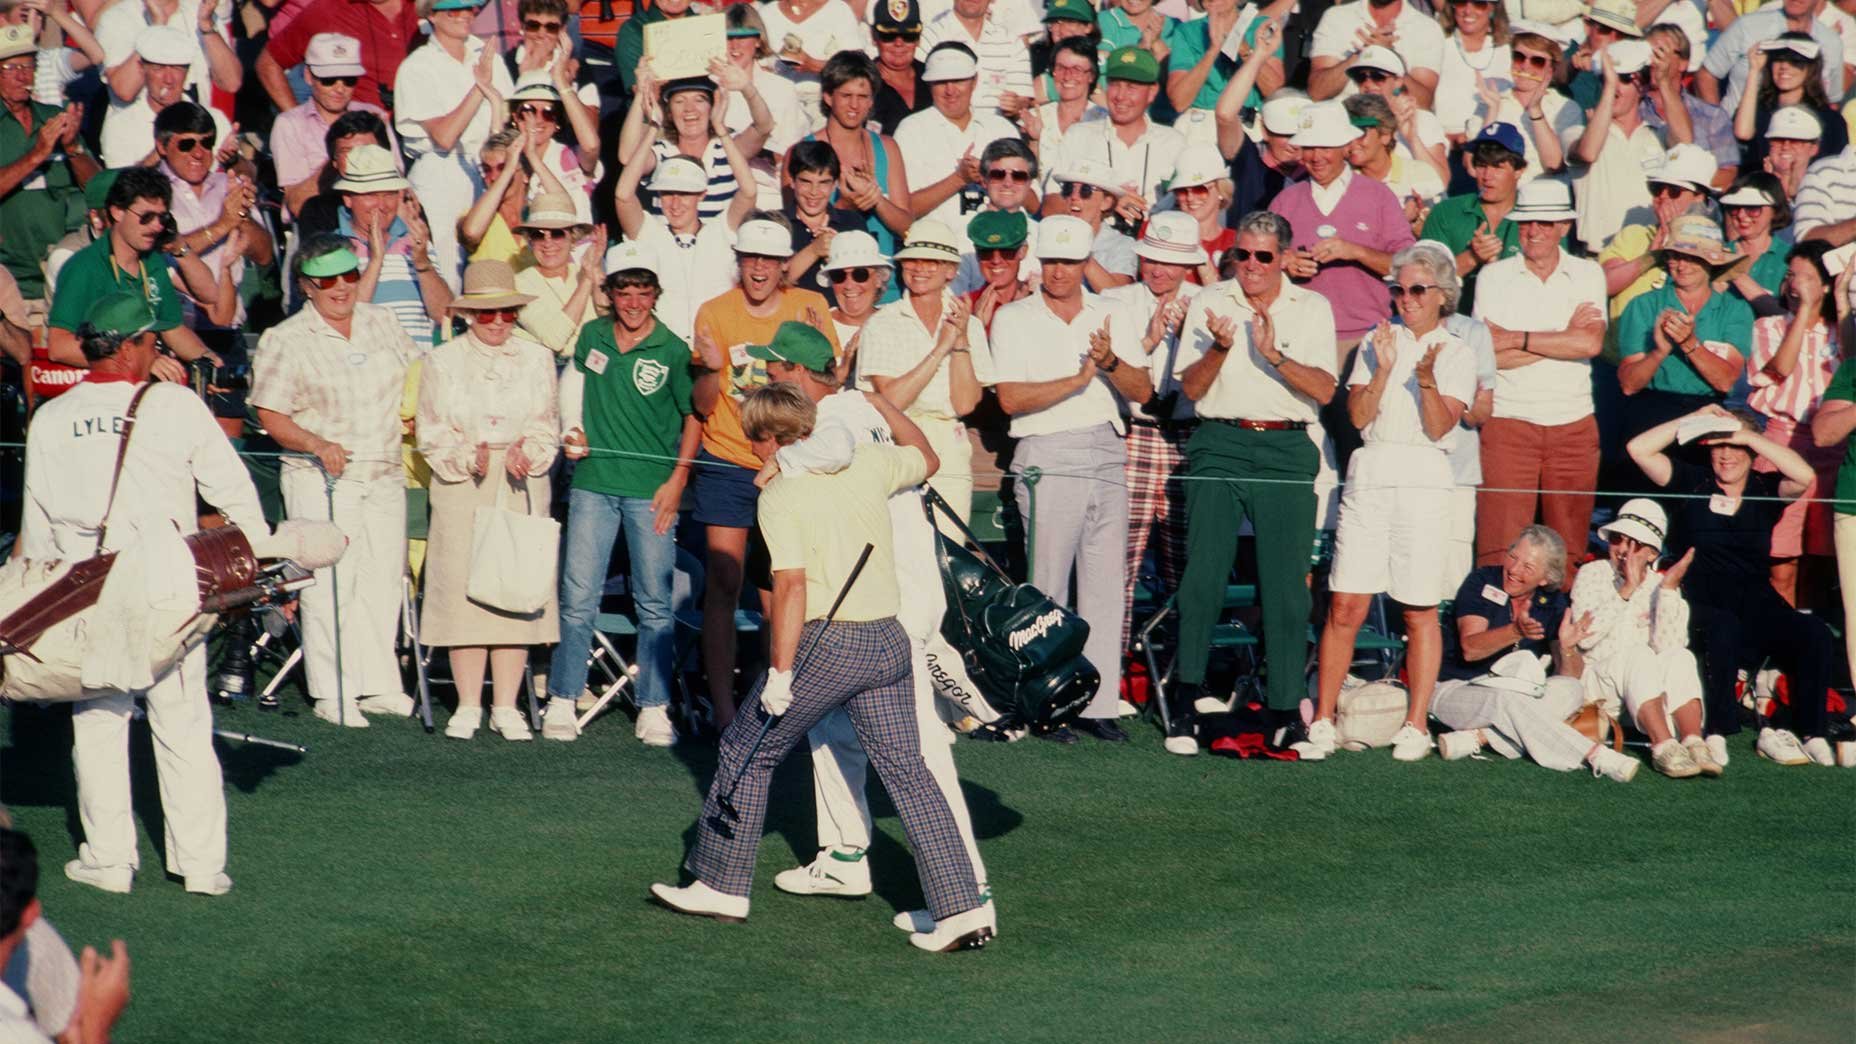 Jack Nicklaus walks off the green at the 1986 Masters.